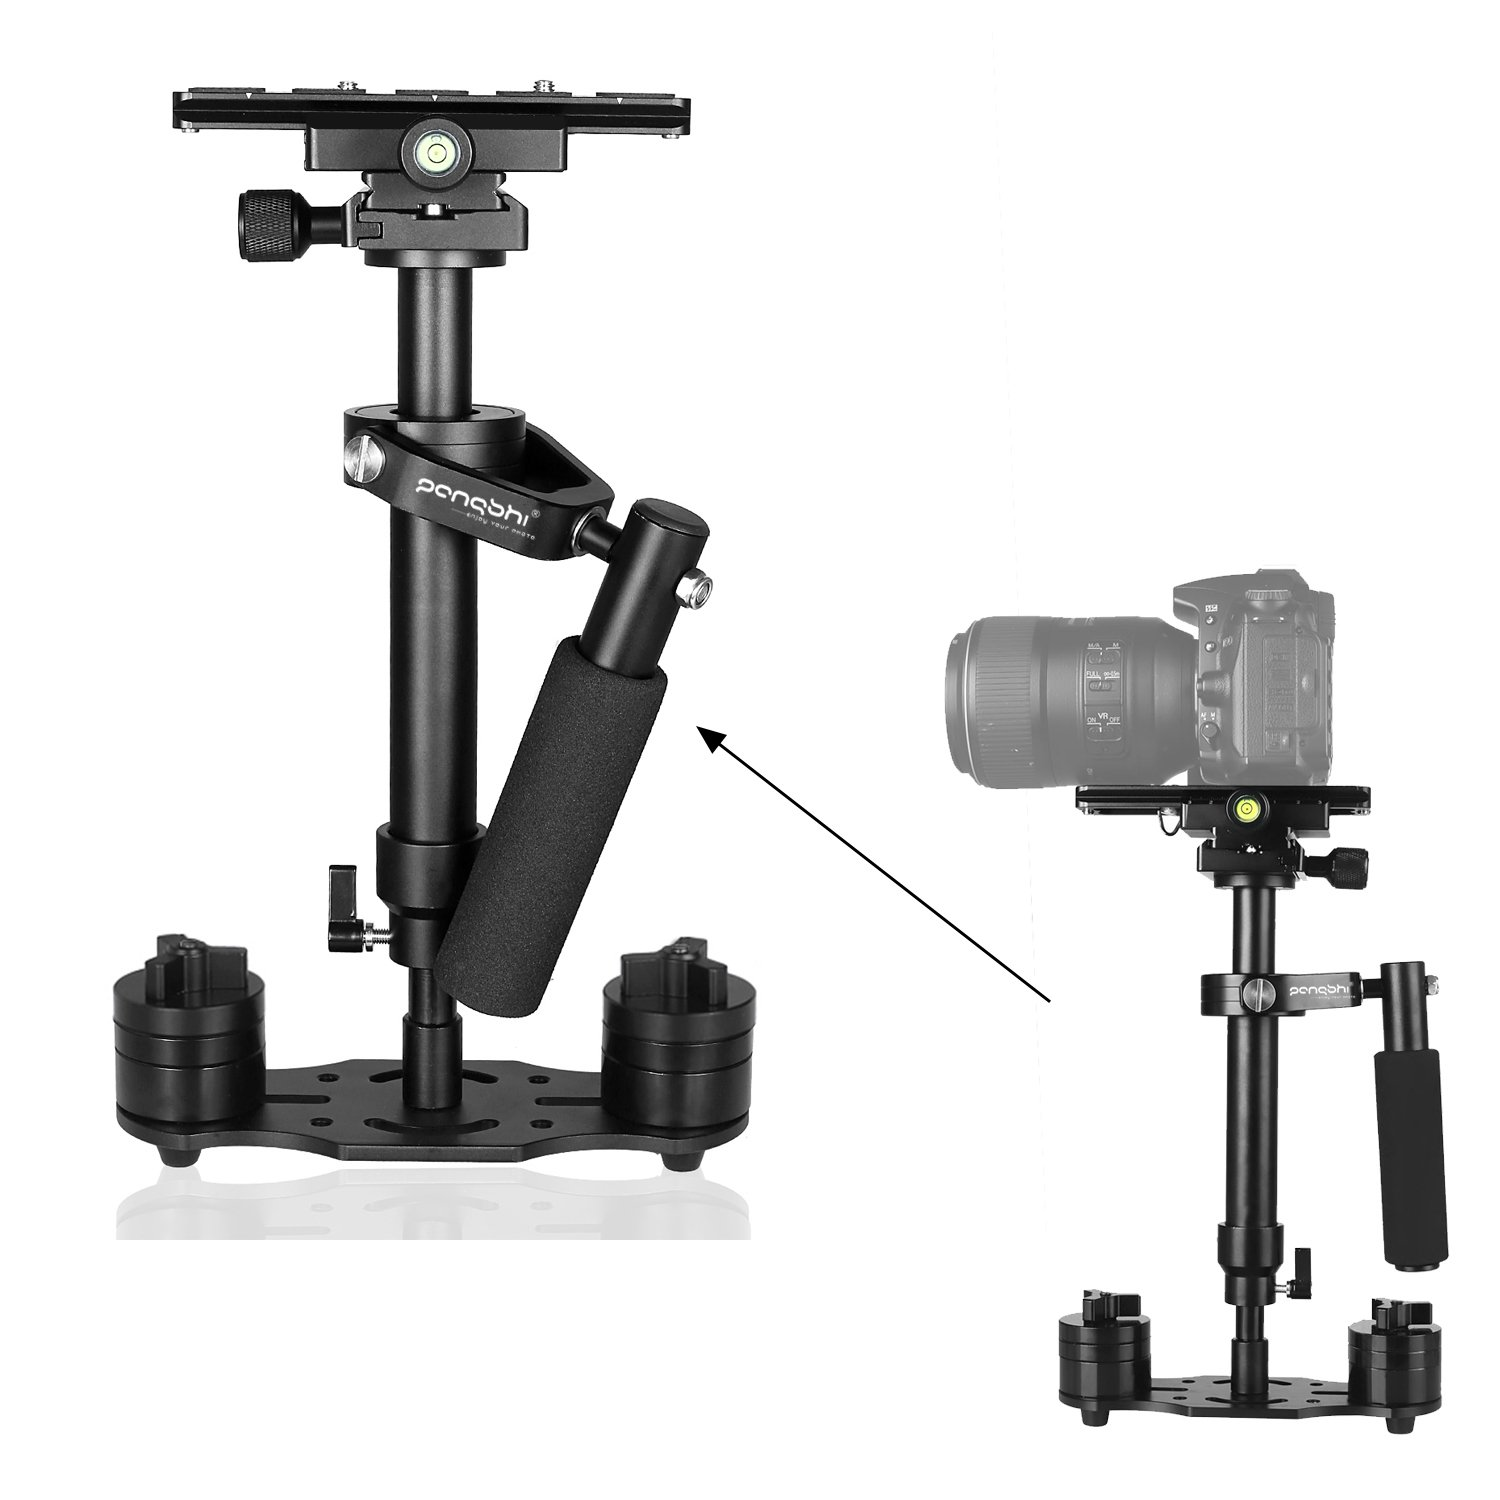 pangshi S40 15.7''/40cm Handheld Stabilizer Steadycam Camera Video Steadicam with 1/4'' Screw Quick Release Sliding Plate for Nikon Canon DSLR SLR Cameras DV up to 3.3lbs/1.5kg